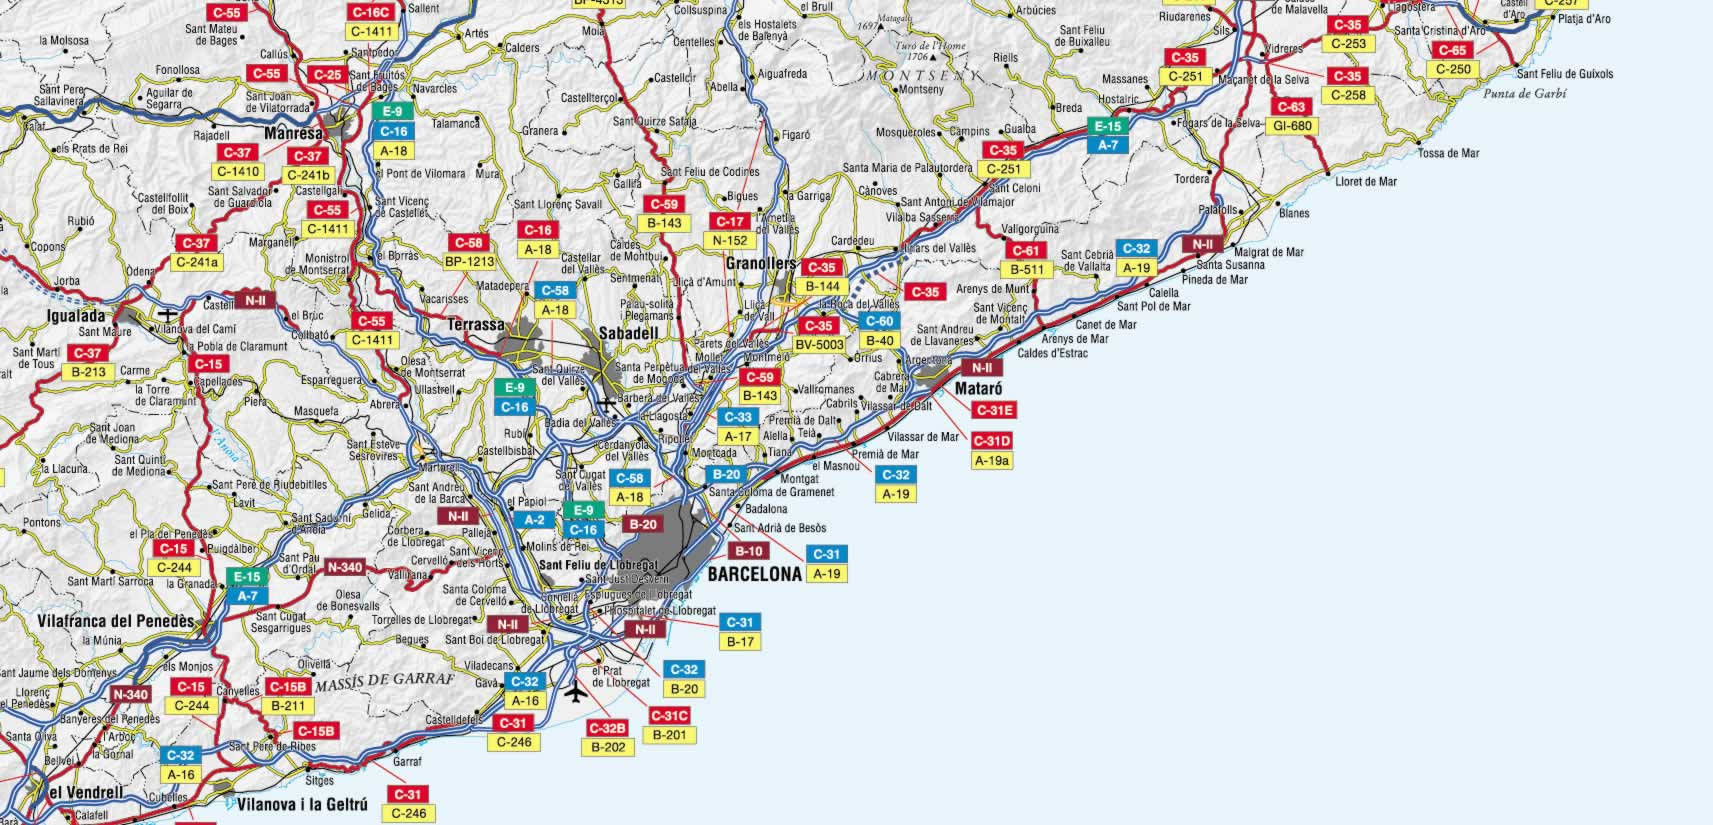 Province of Barcelona road map